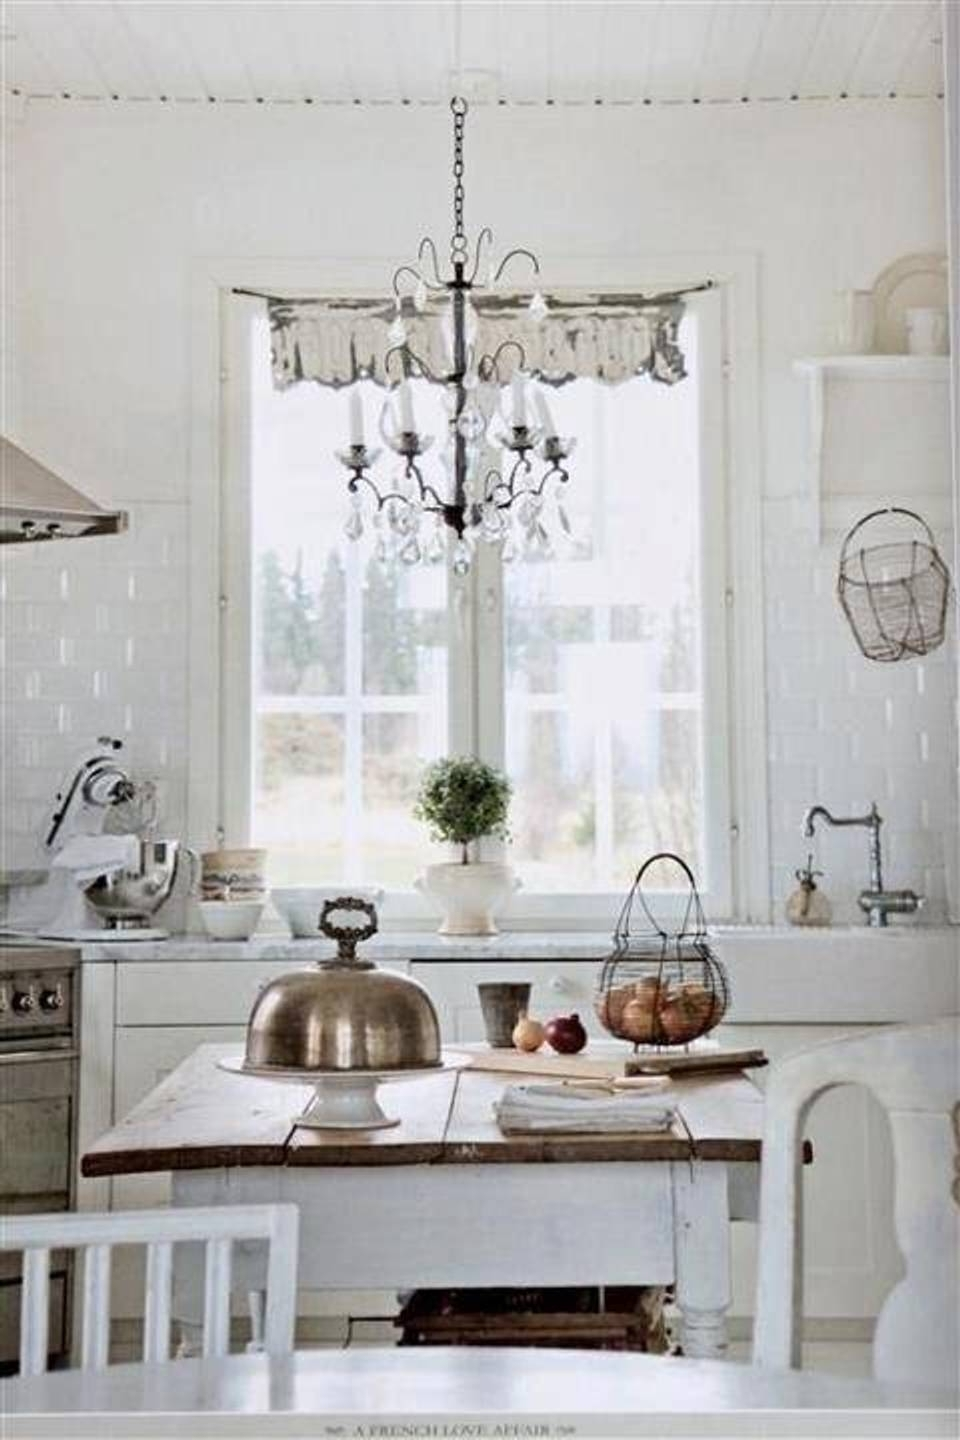 Country Chic Chandelier Intended For Recent Shabby Chic White Kitchen With Chandelier Lighting Fixtures (View 8 of 20)